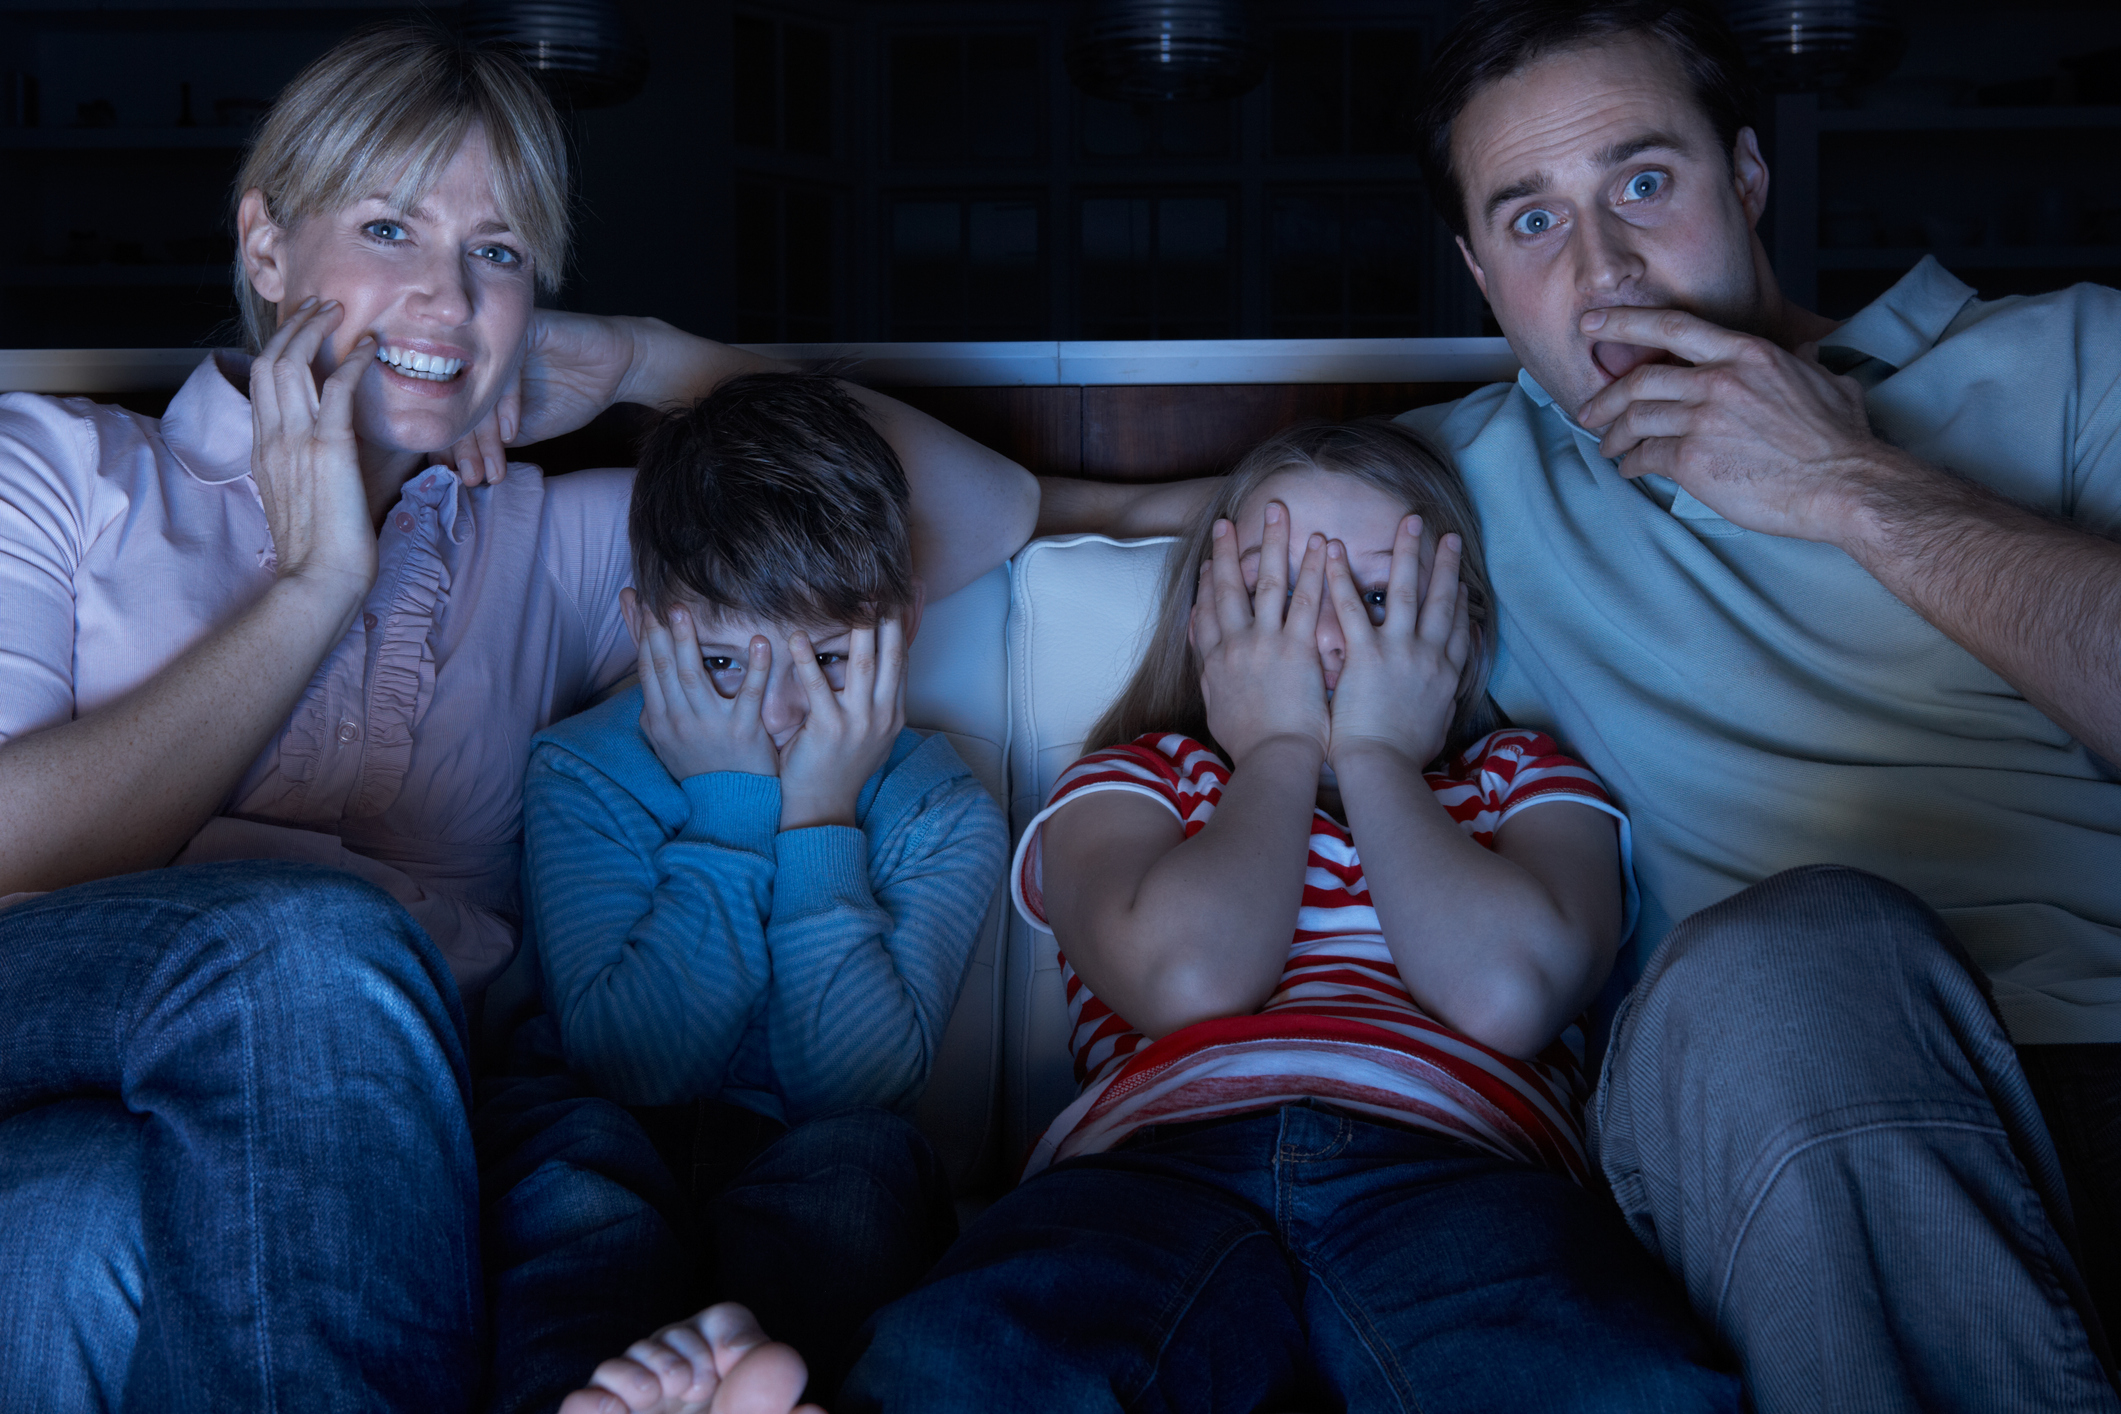 Should You Let Your Kid Watch Scary Movies? | Psychology Today